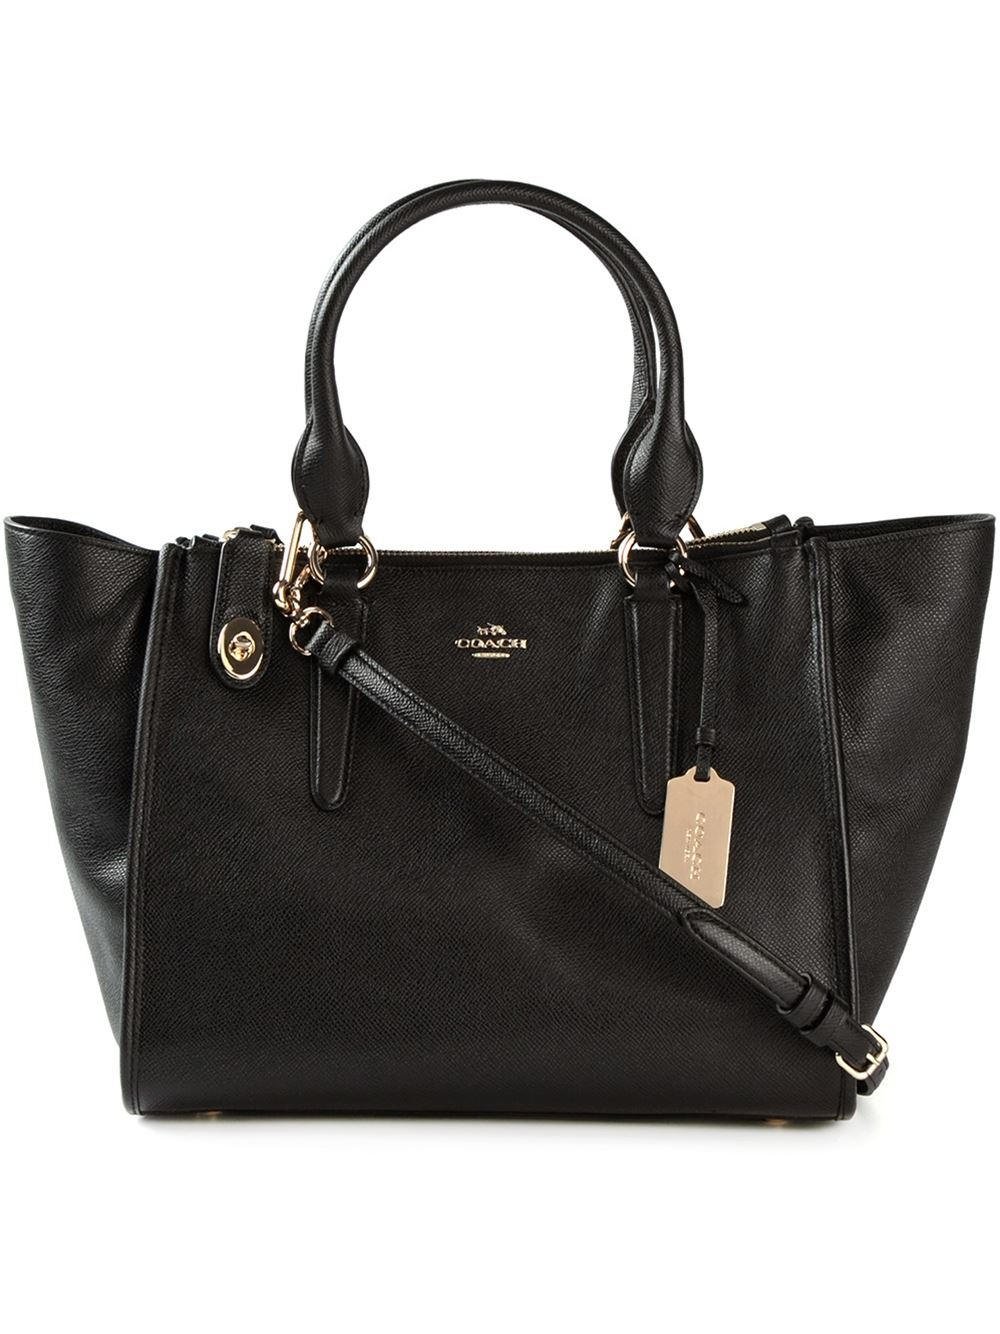 Coach Crosby Leather Shoulder Bag in Black | Lyst